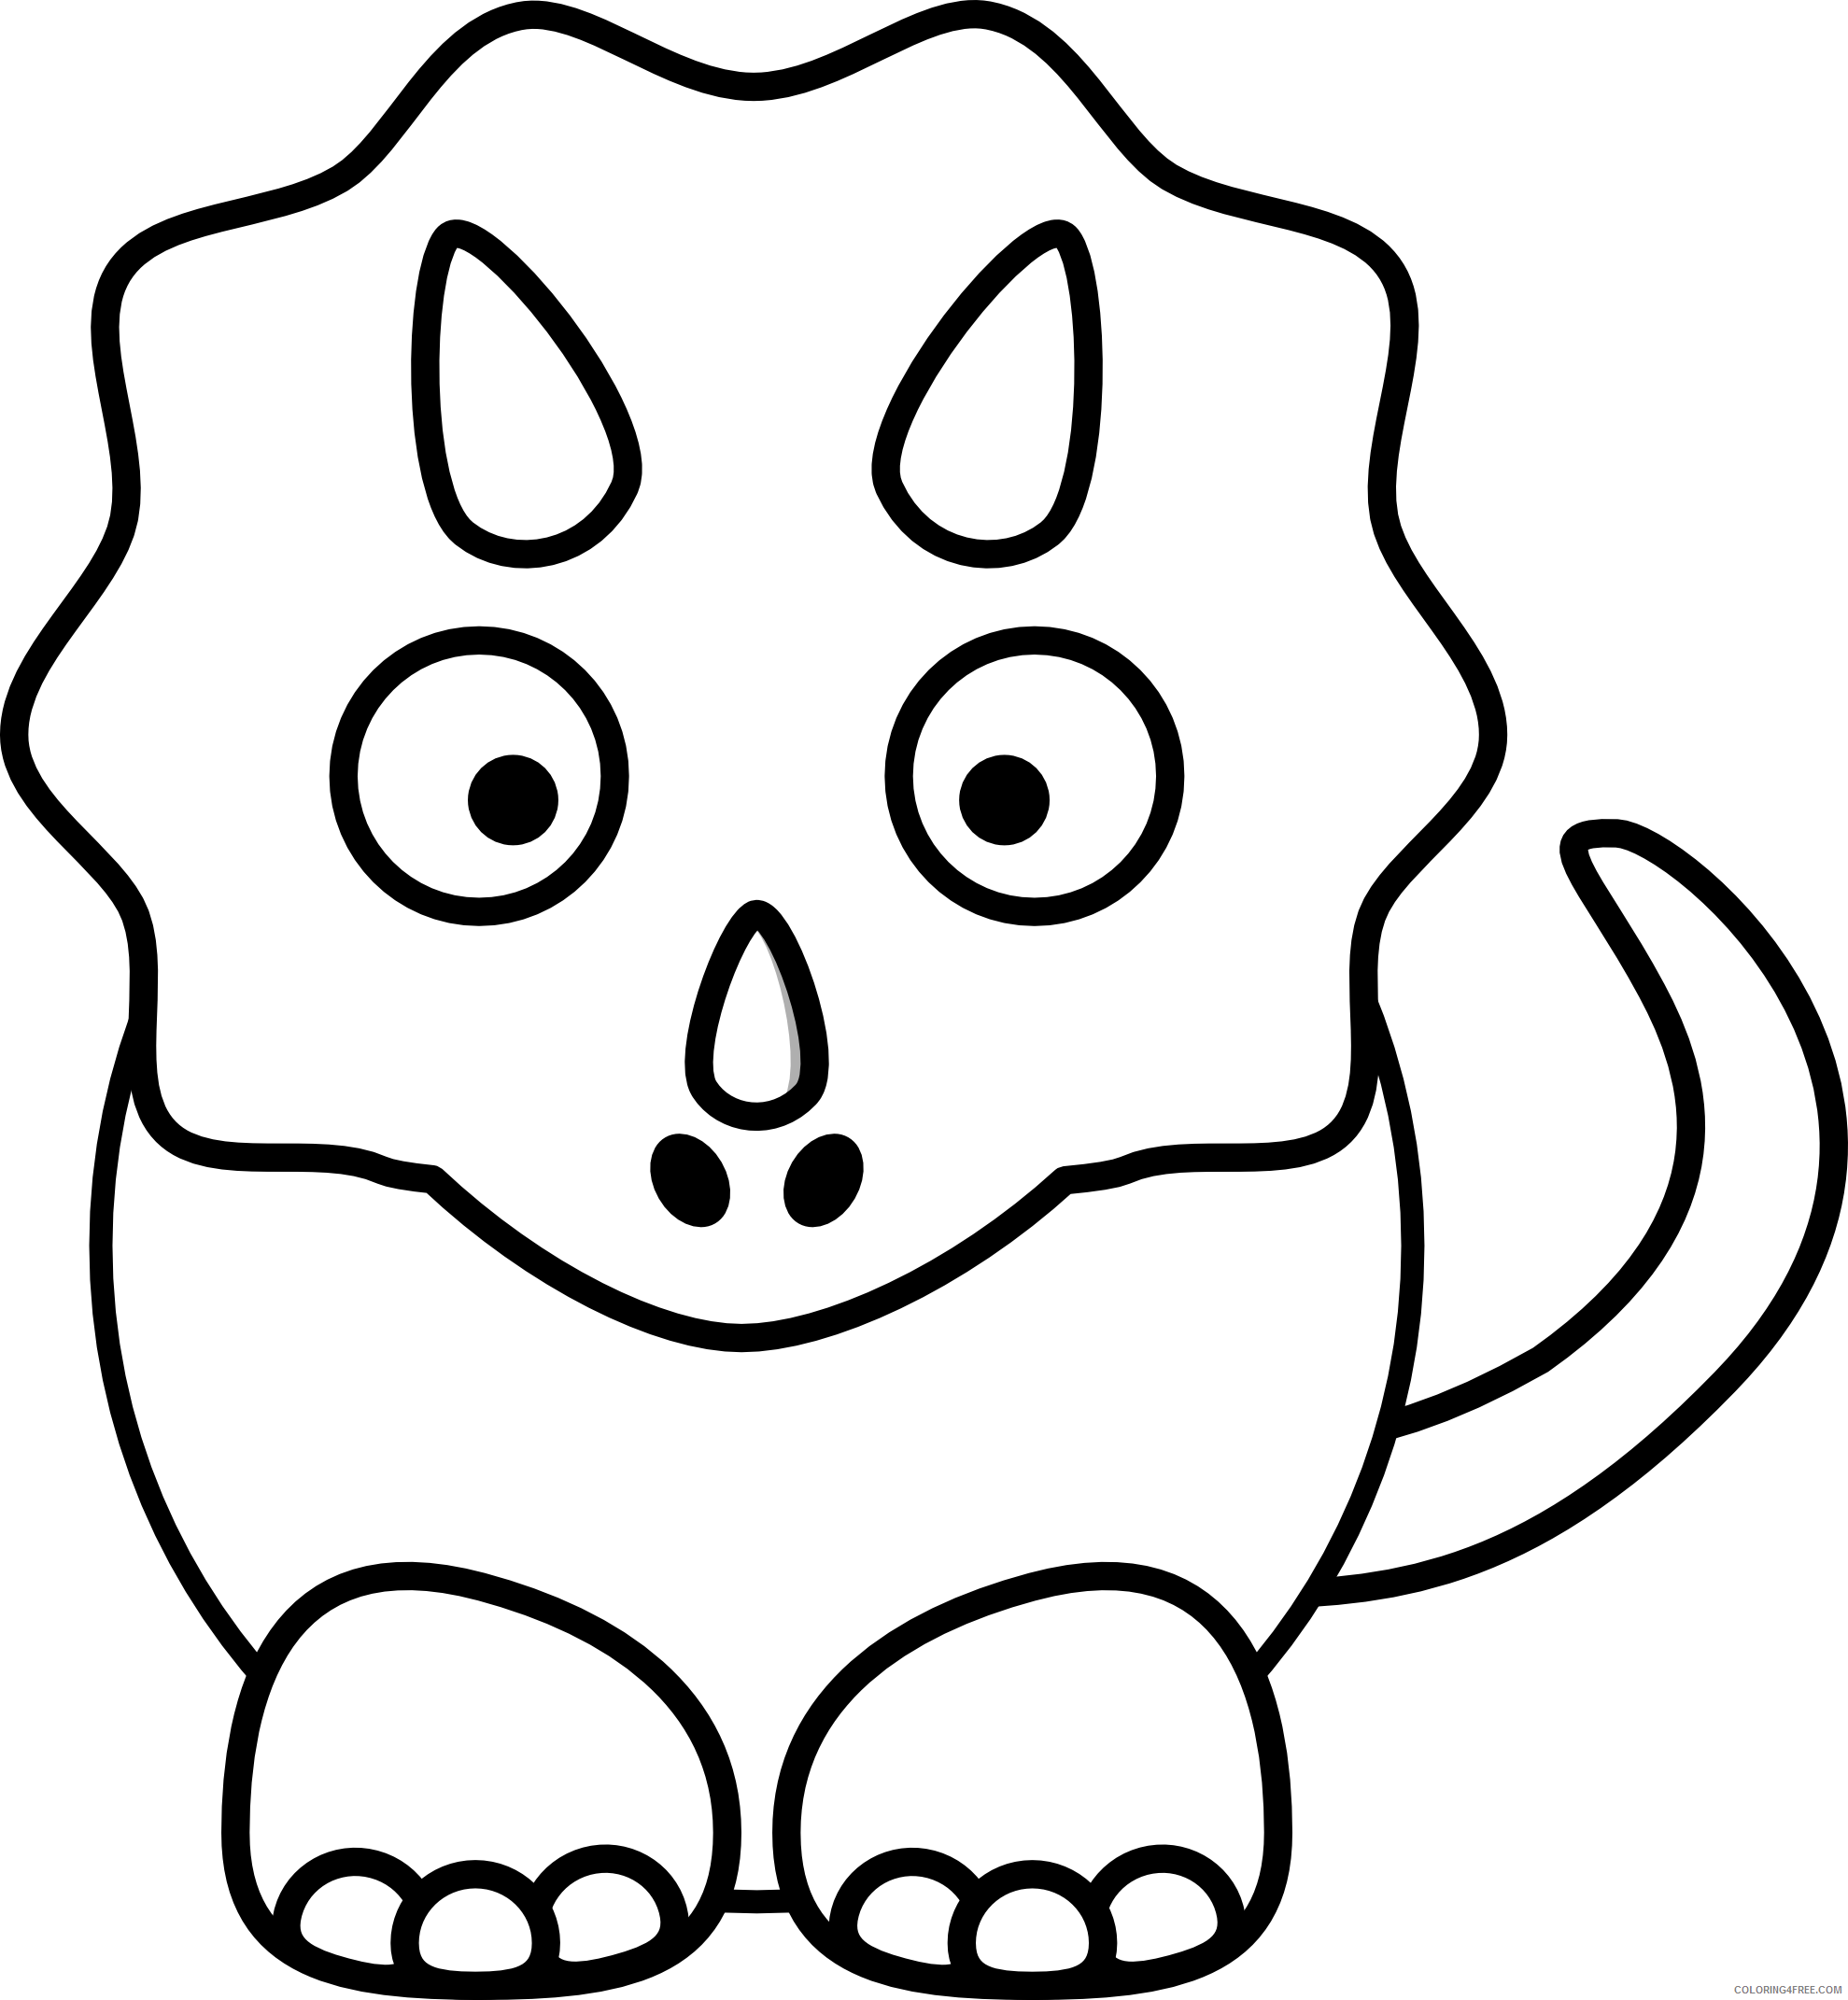 Cartoon Animals Coloring Pages cartoon animals Printable Coloring4free